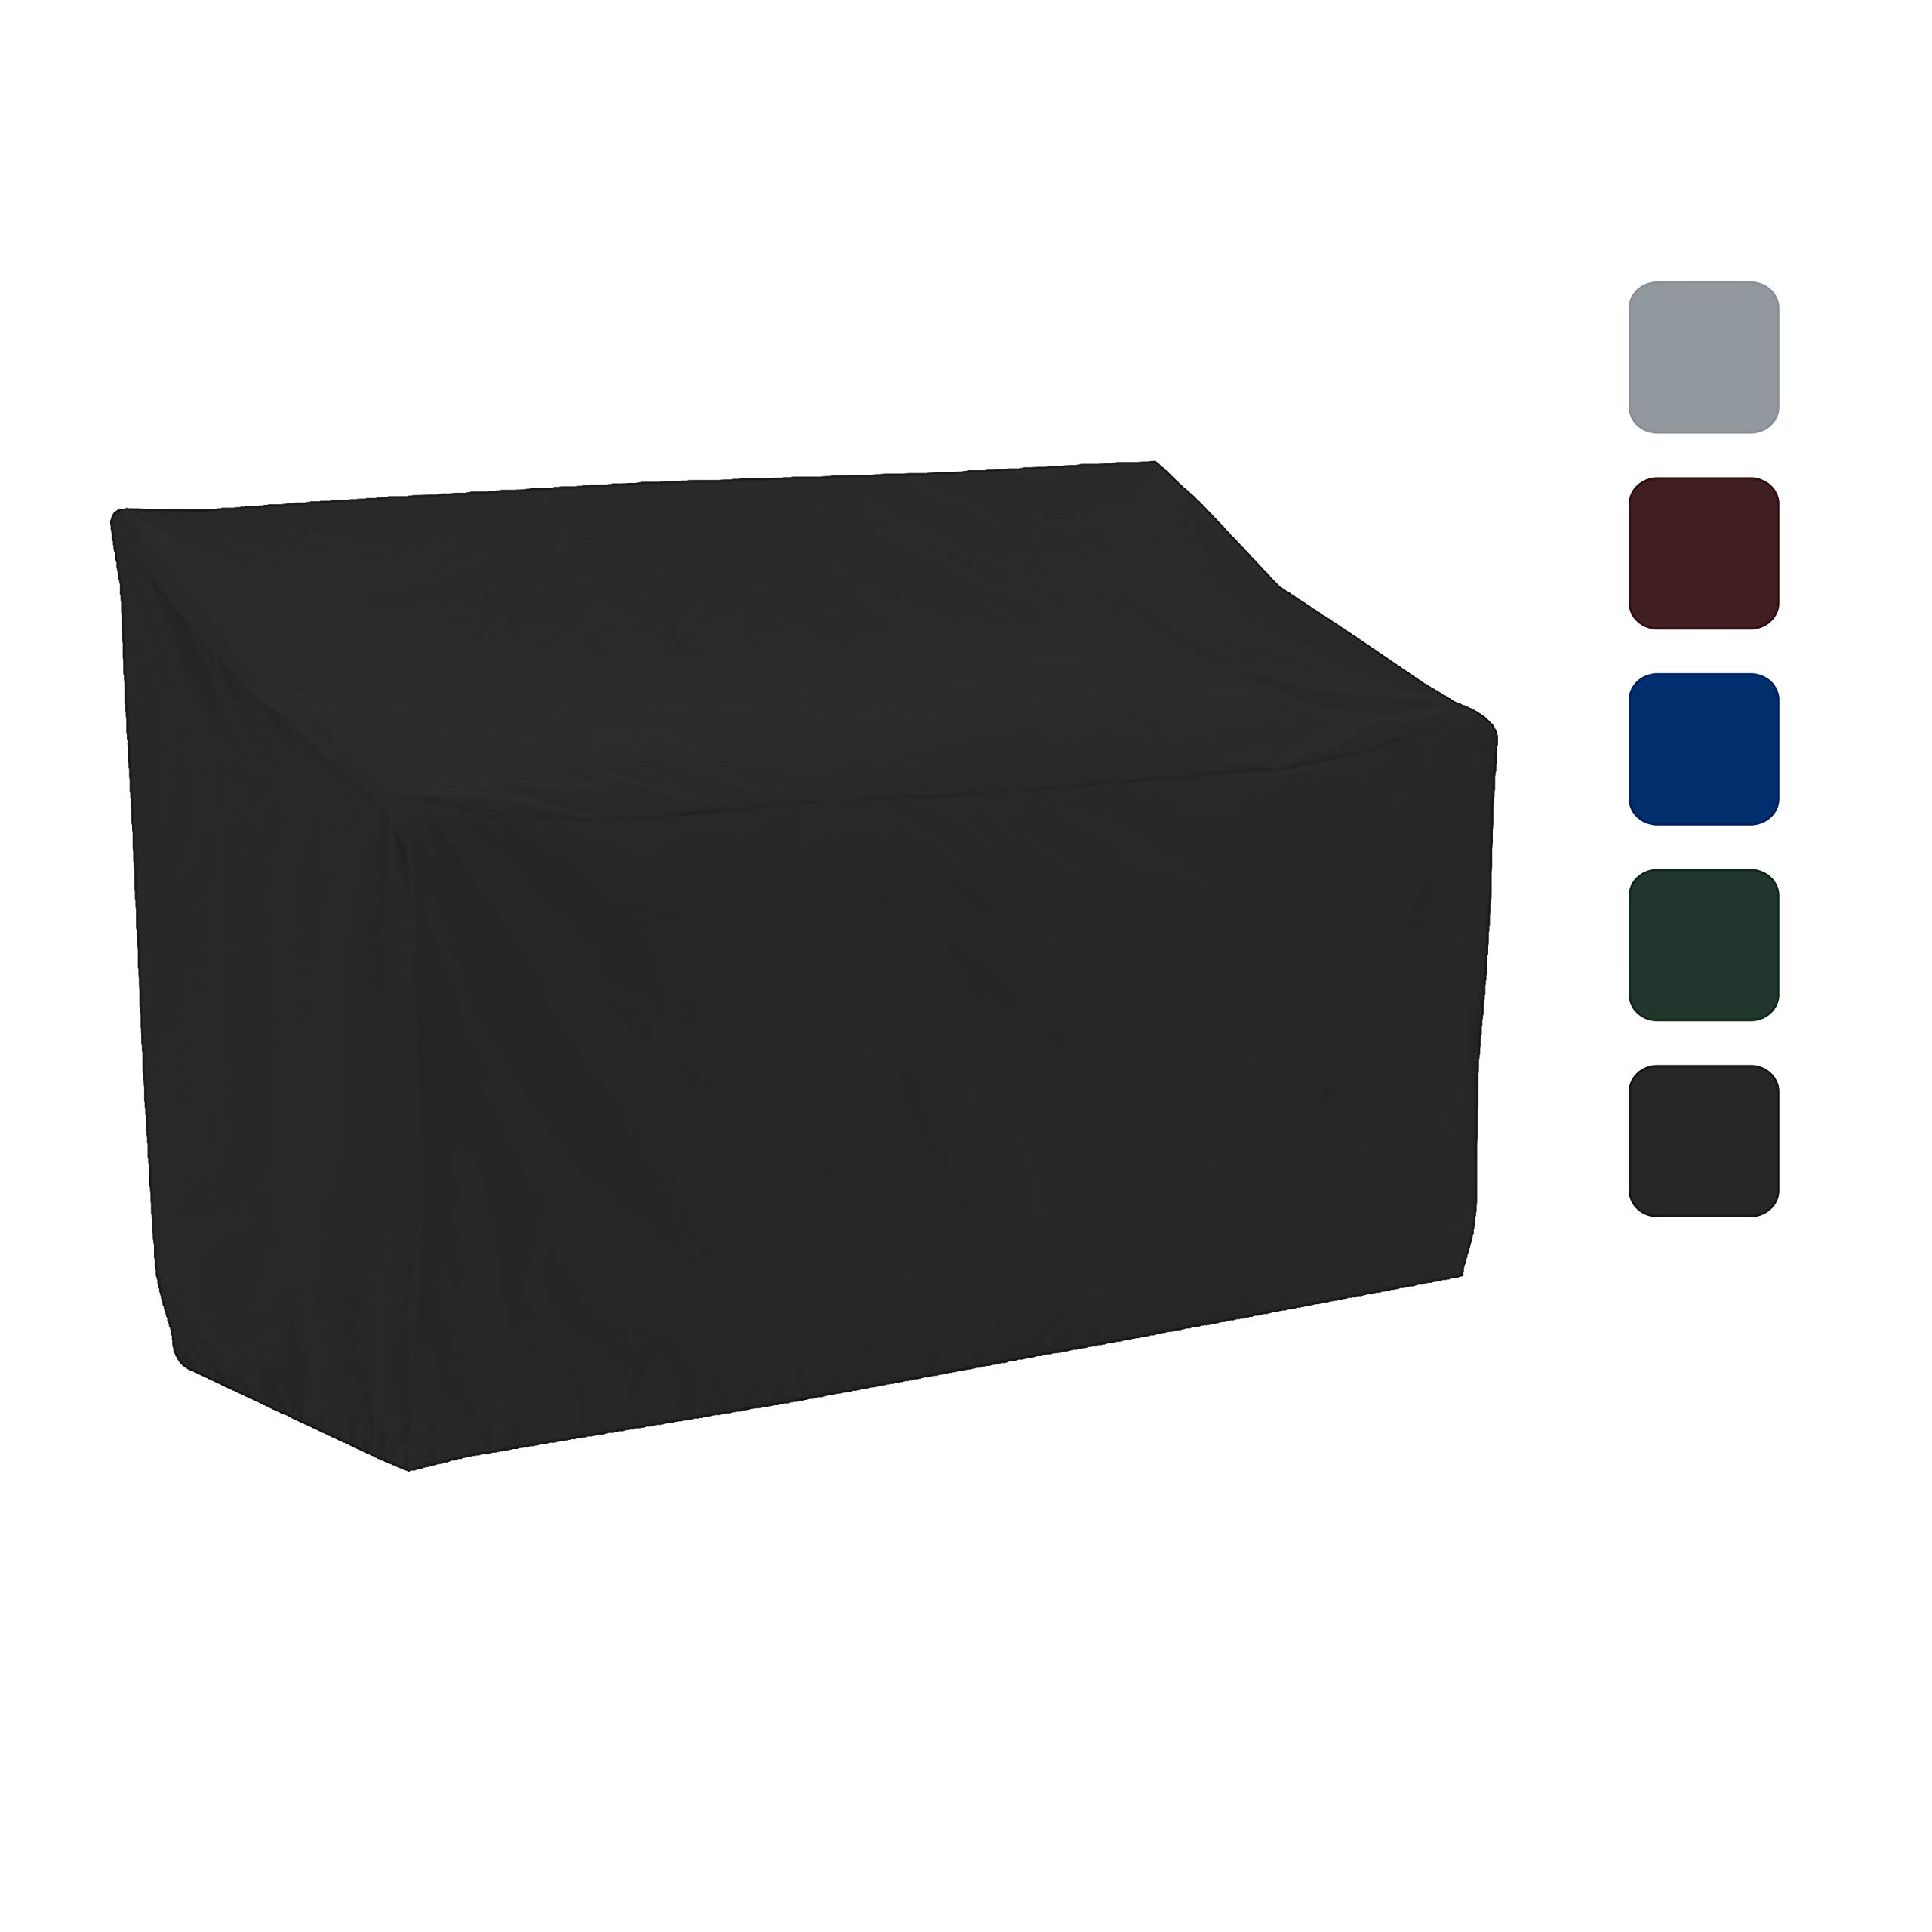 COVERS & ALL Bench Cover 18 Oz Waterproof - 100% UV & Weather Resistant Customizable Bench Seat Cover with Air Pockets and Drawstring for Snug Fit (50'' X 28.5'' X 30'', Black) by COVERS & ALL